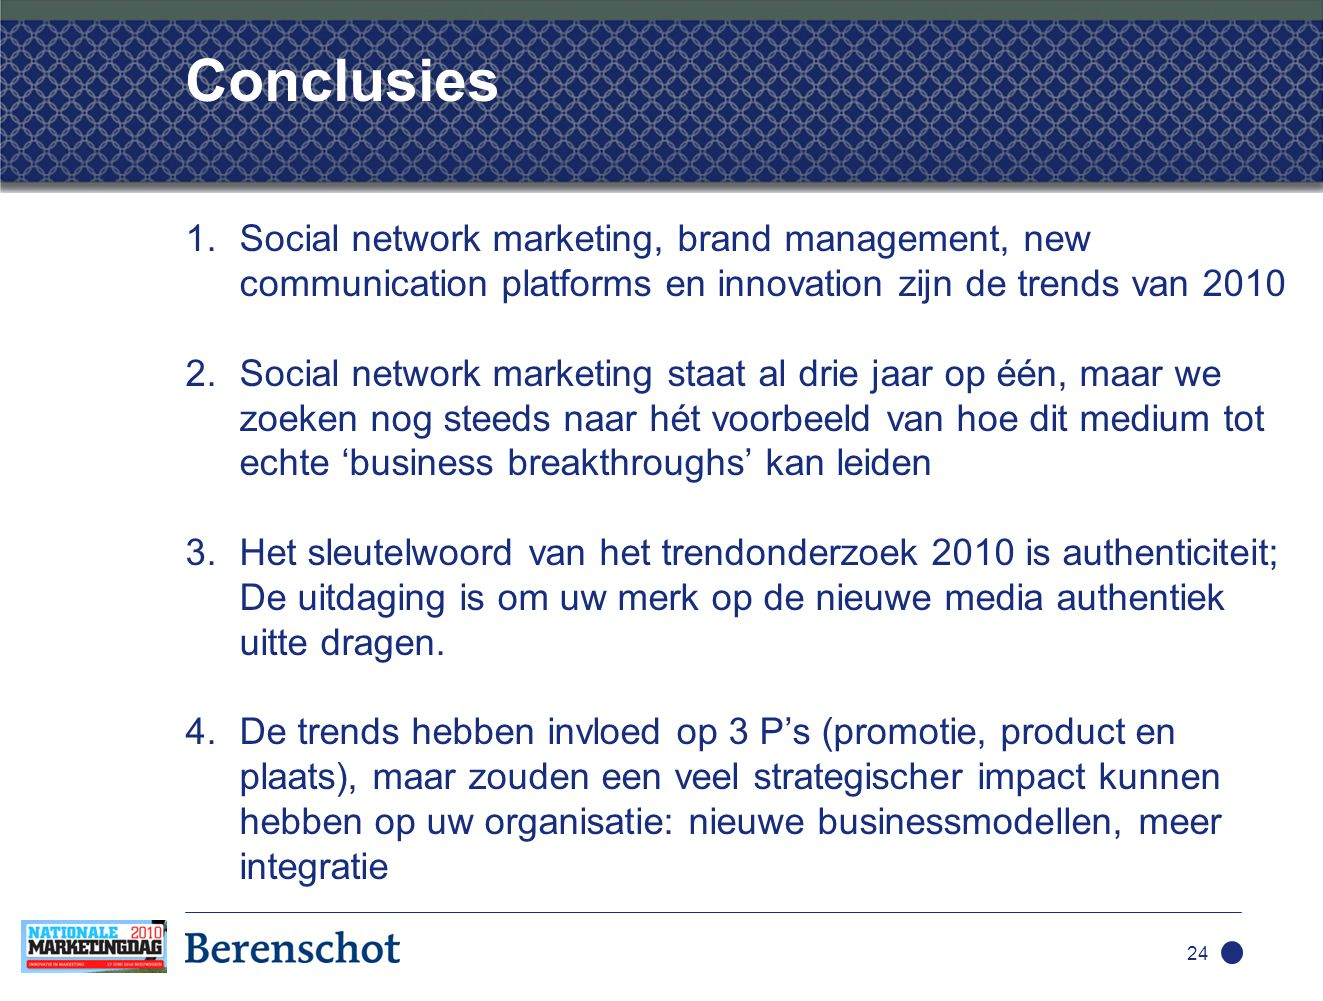 1.Social network marketing, brand management, new communication platforms en innovation zijn de trends van 2010 2.Social network marketing staat al drie jaar op één, maar we zoeken nog steeds naar hét voorbeeld van hoe dit medium tot echte 'business breakthroughs' kan leiden 3.Het sleutelwoord van het trendonderzoek 2010 is authenticiteit; De uitdaging is om uw merk op de nieuwe media authentiek uitte dragen.